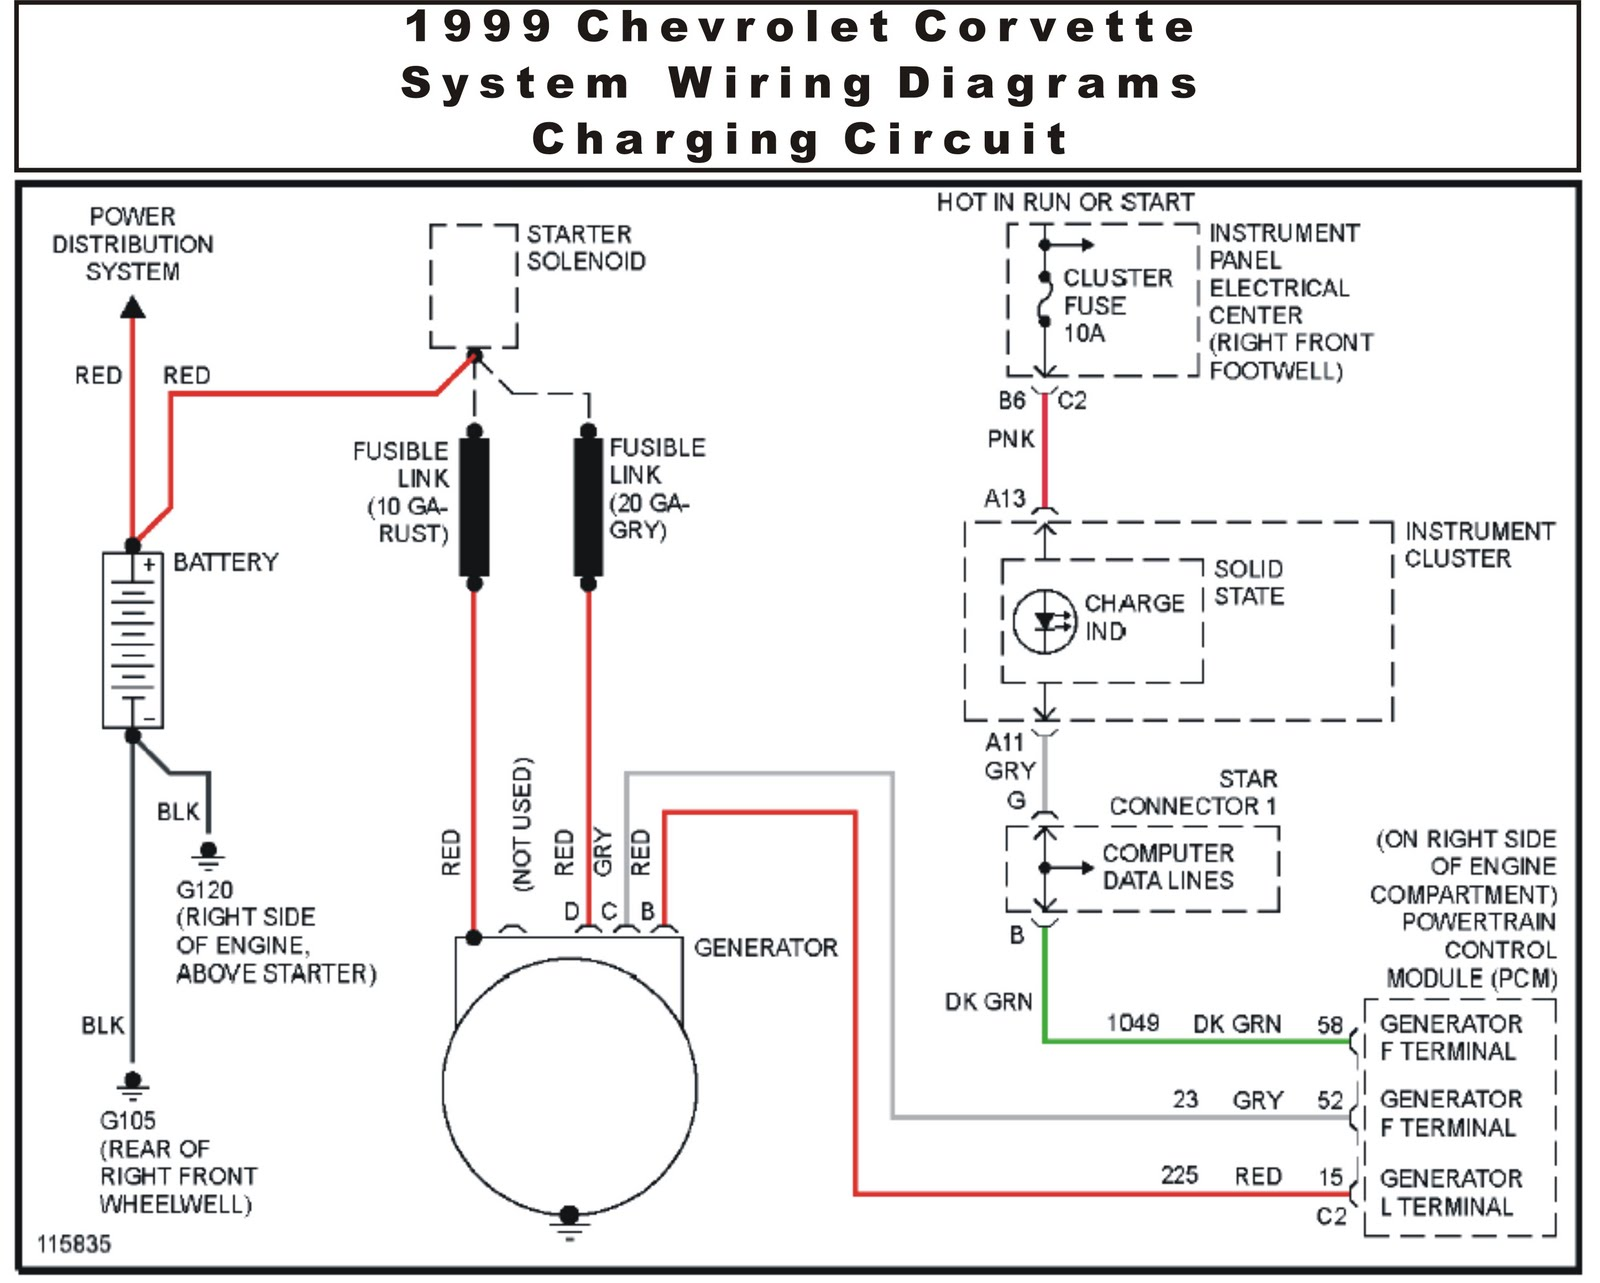 2000 Chevy Blazer Starter Wiring Diagram 7 Way Flat Blade Trailer Charging System For 18 22 Kenmo Rh 30 Malibustixx De 2004